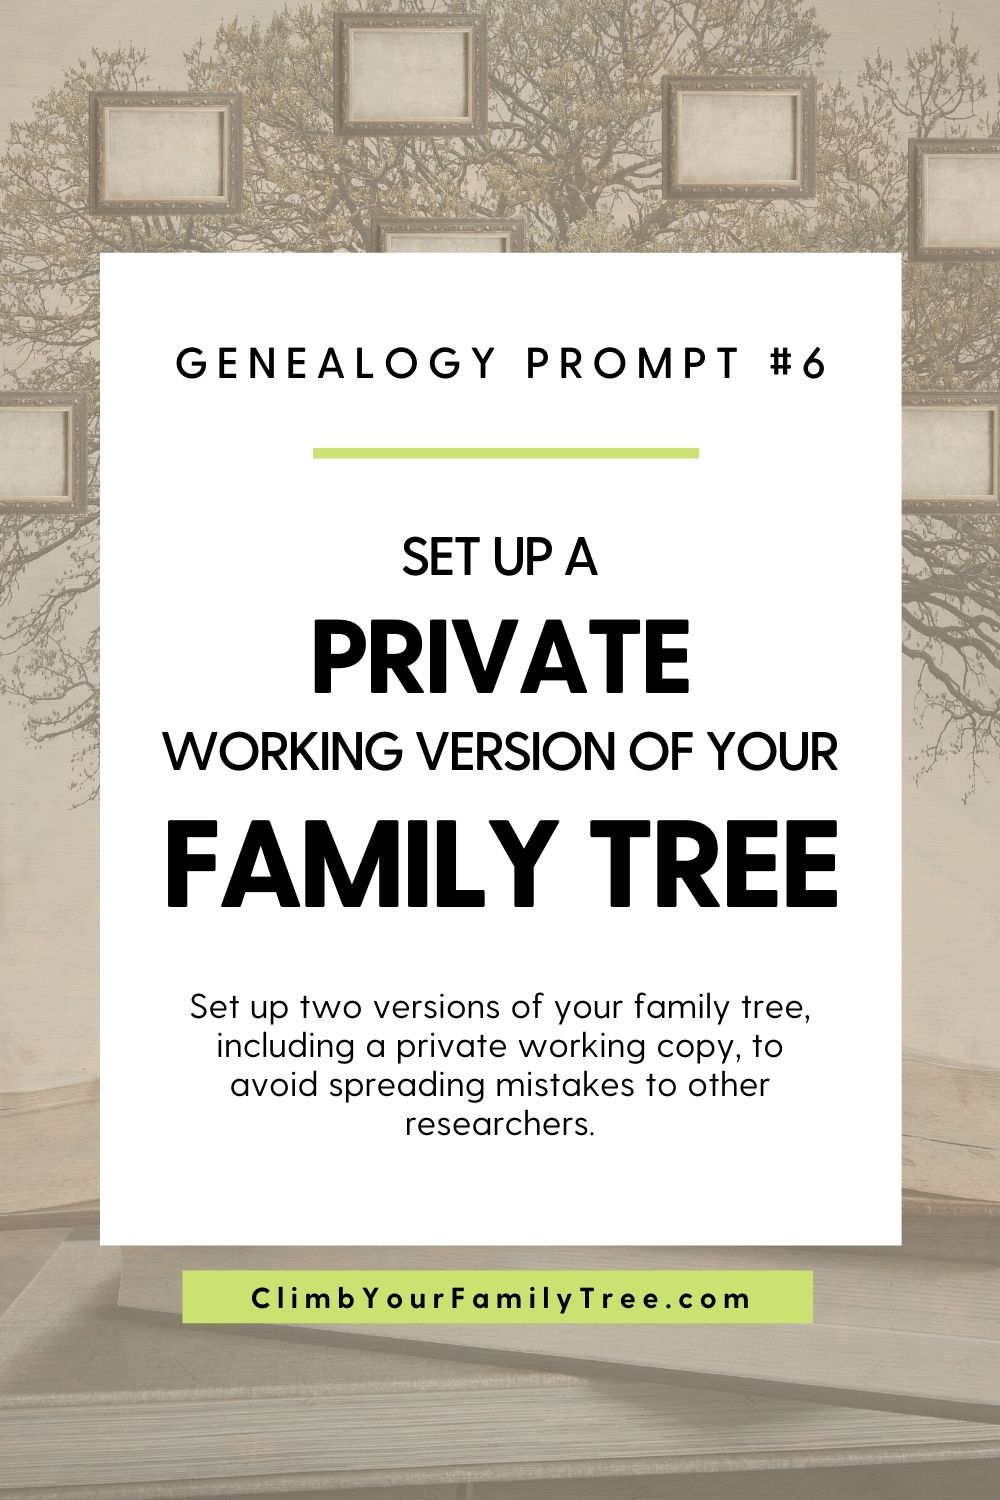 Genealogy Prompt 6 - Set up a Private Working Version of Your Family Tree - Set up two versions of your family tree including a private working copy to avoid spreading mistakes to other researchers - ClimbYourFamilyTree.com